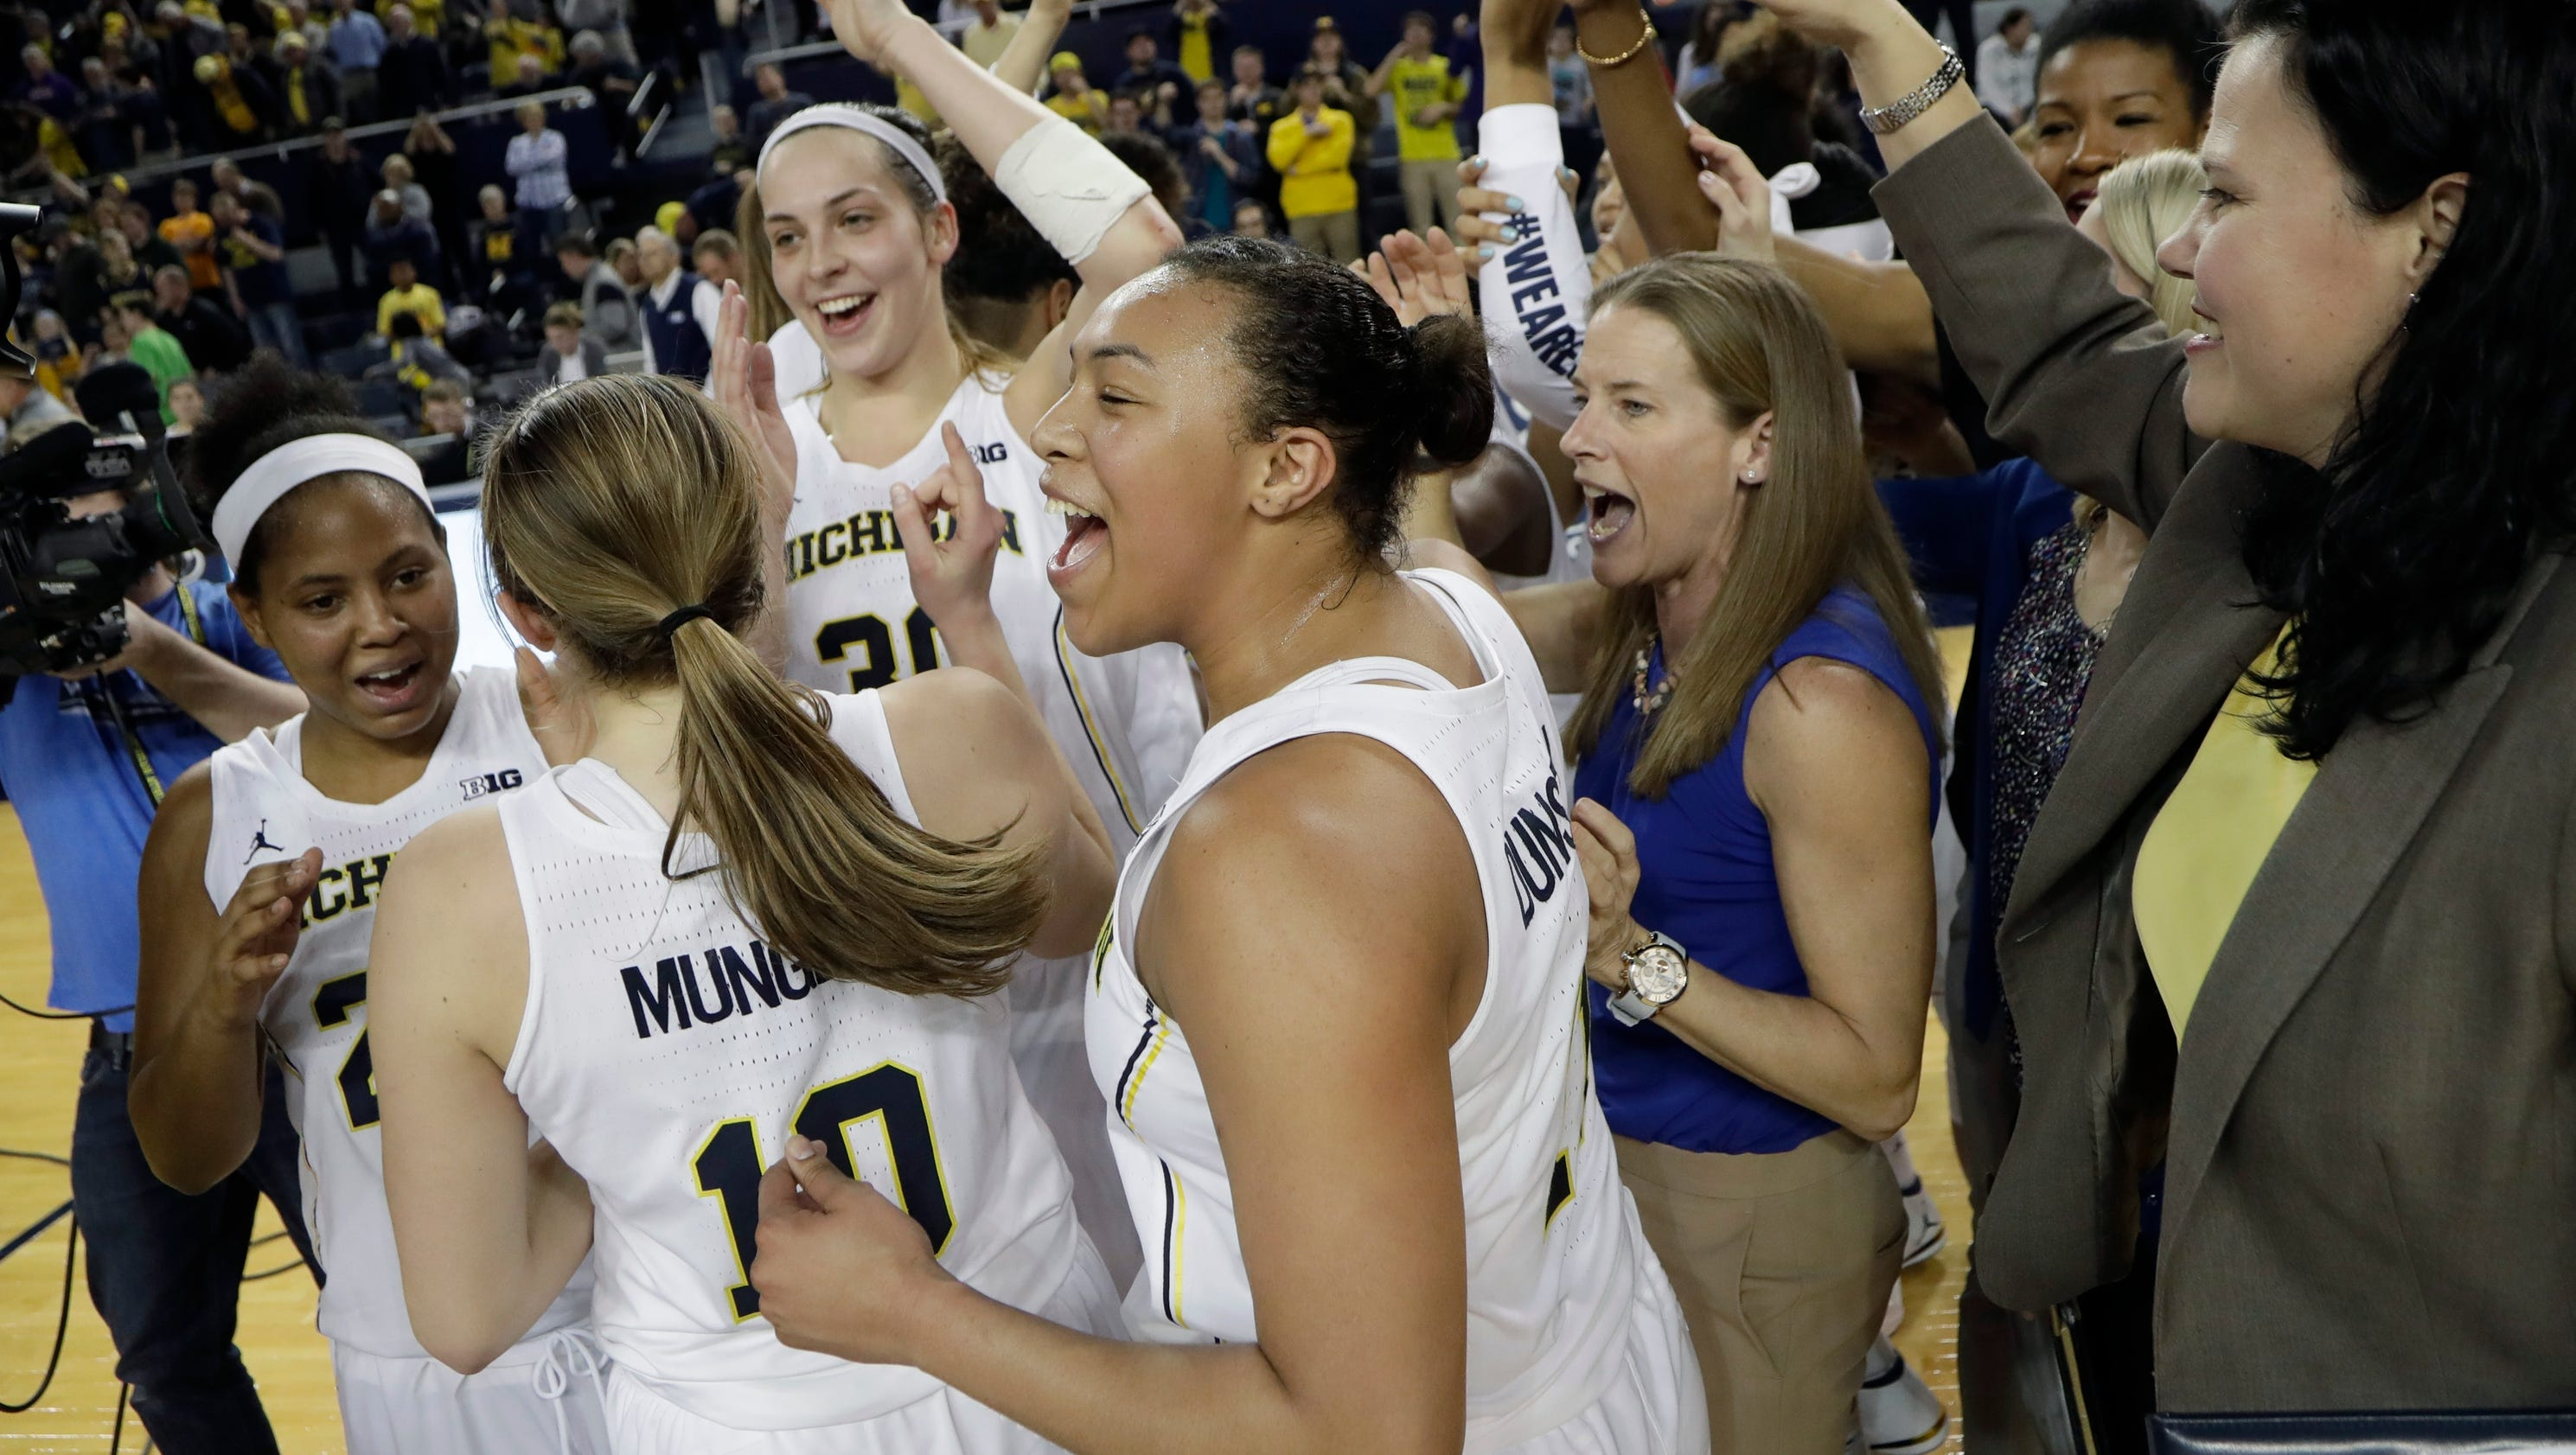 636264222460738754-ap-wnit-villanova-michigan-b-10-